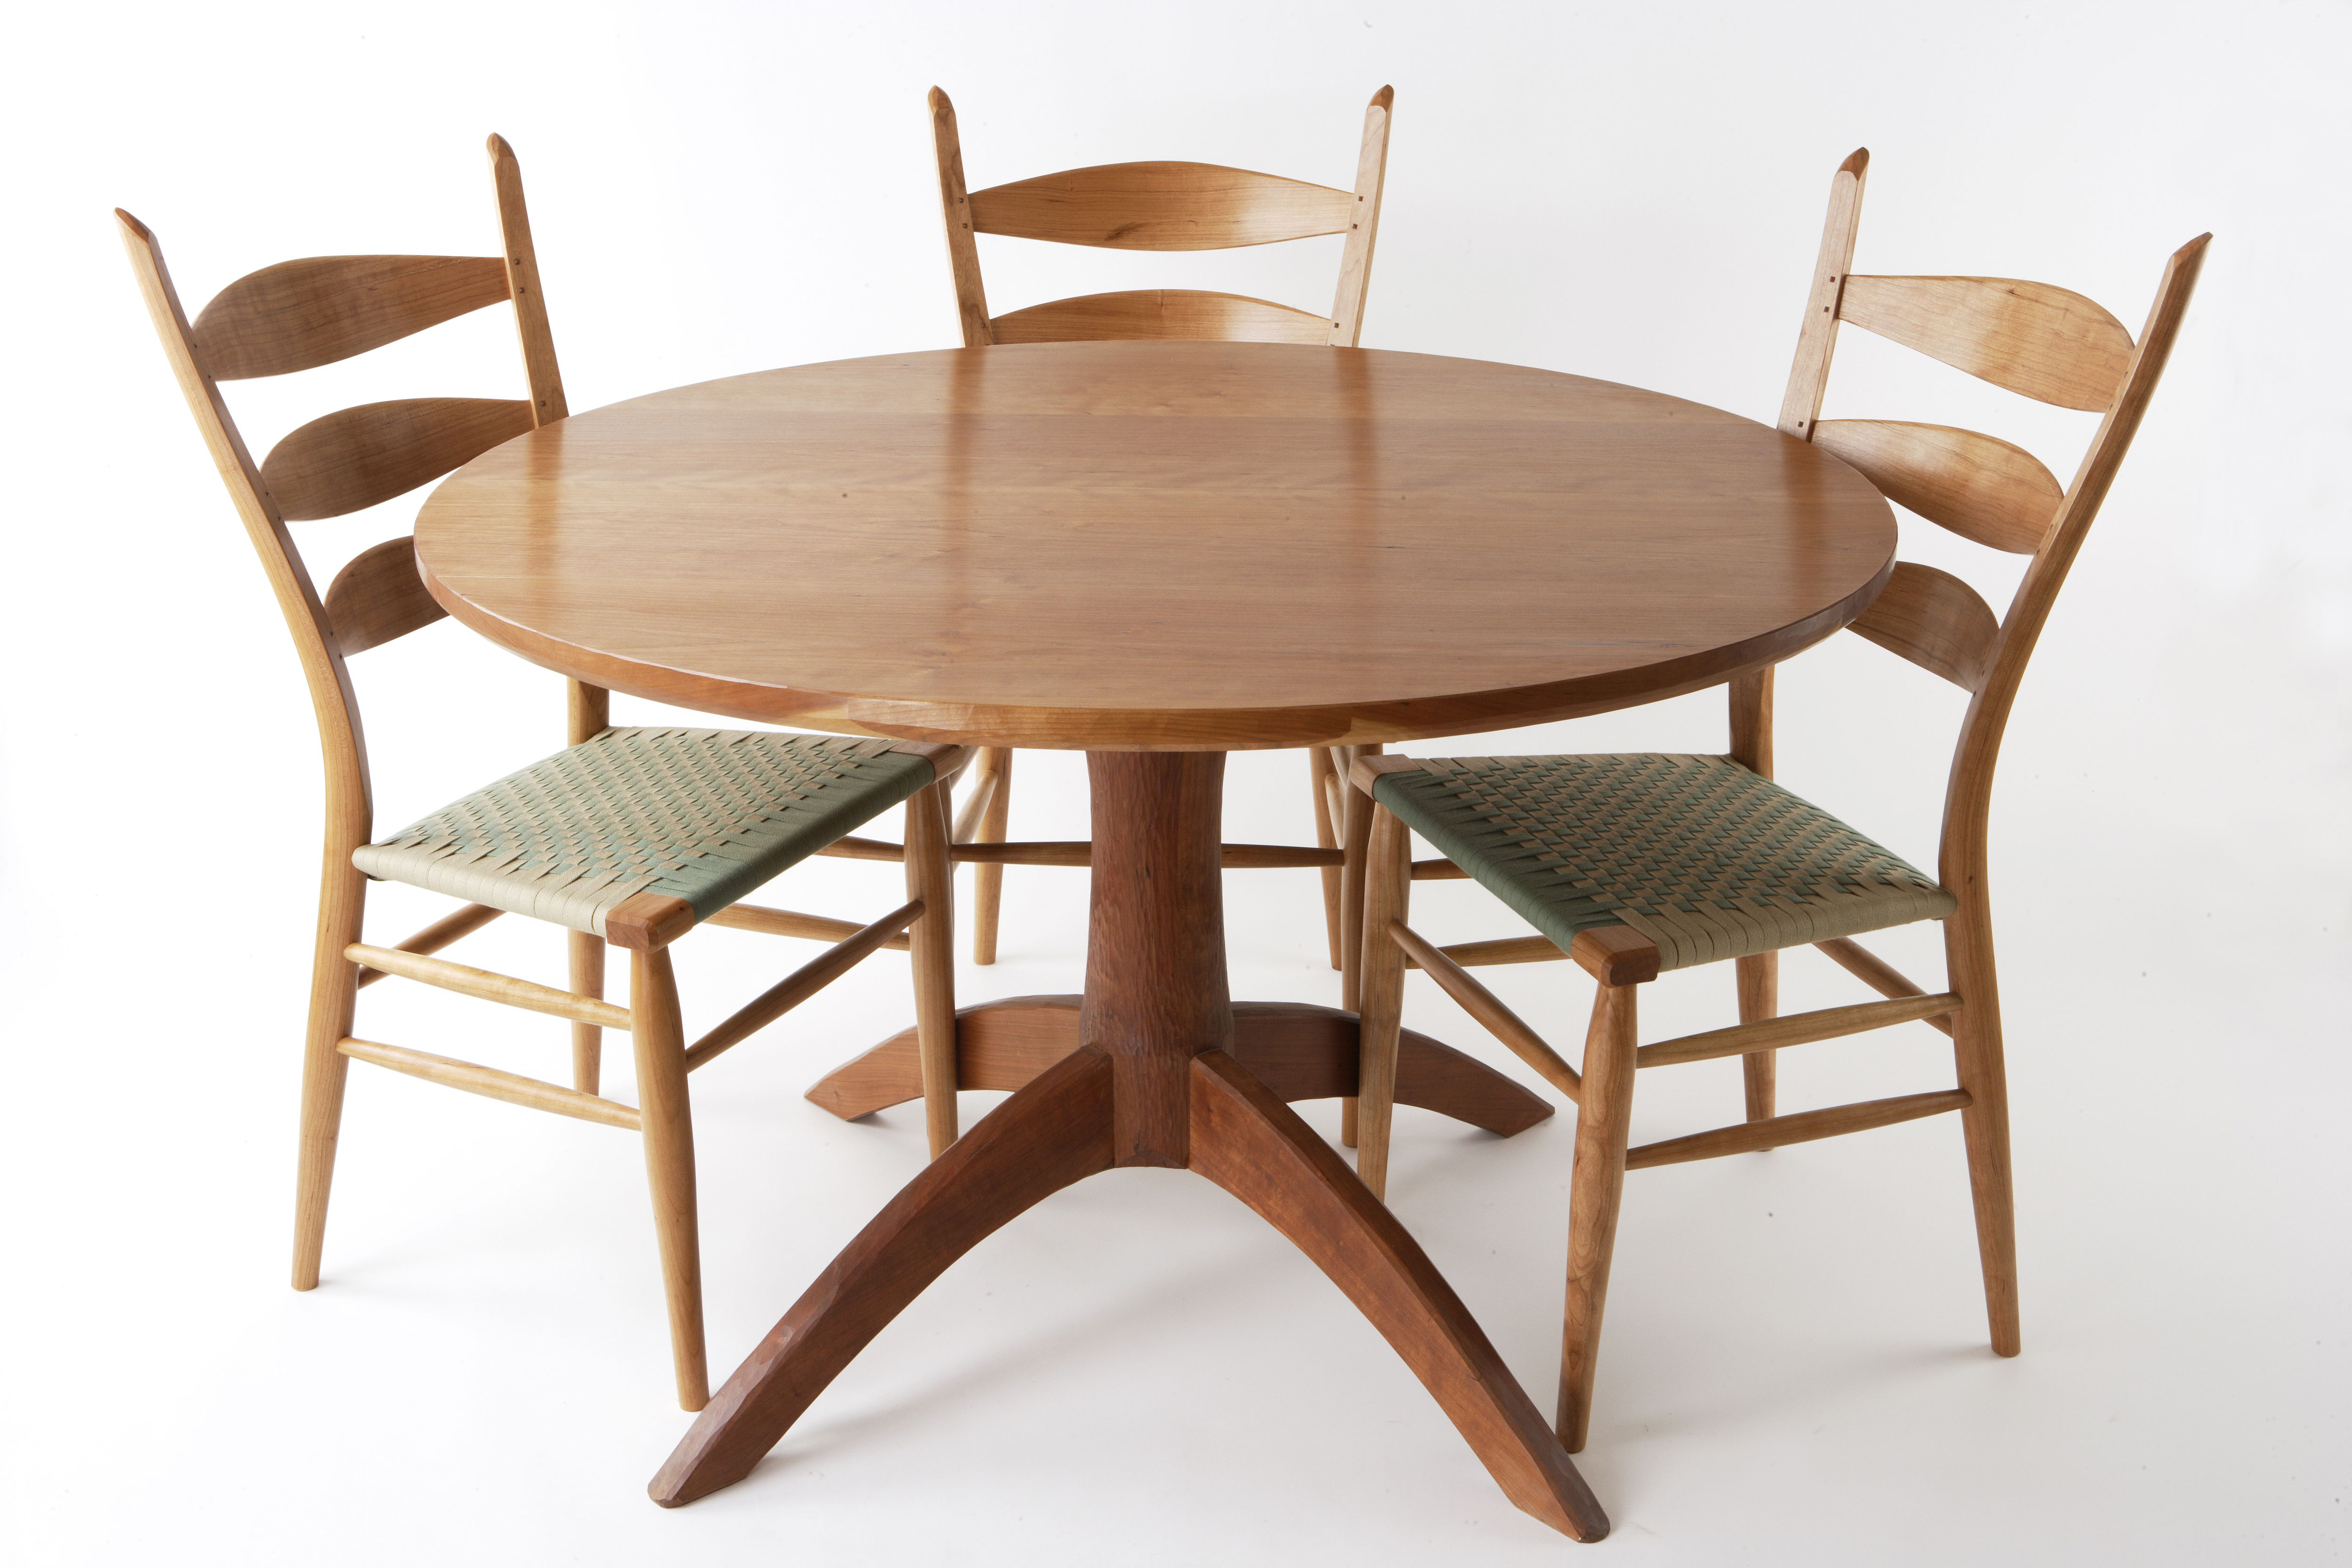 Cherry Dining Set Classic Ladder Back Chairs With Shaker Tape Woven Seats Pedestal Table With Carved Detail At The Base Dining Table Furniture Table